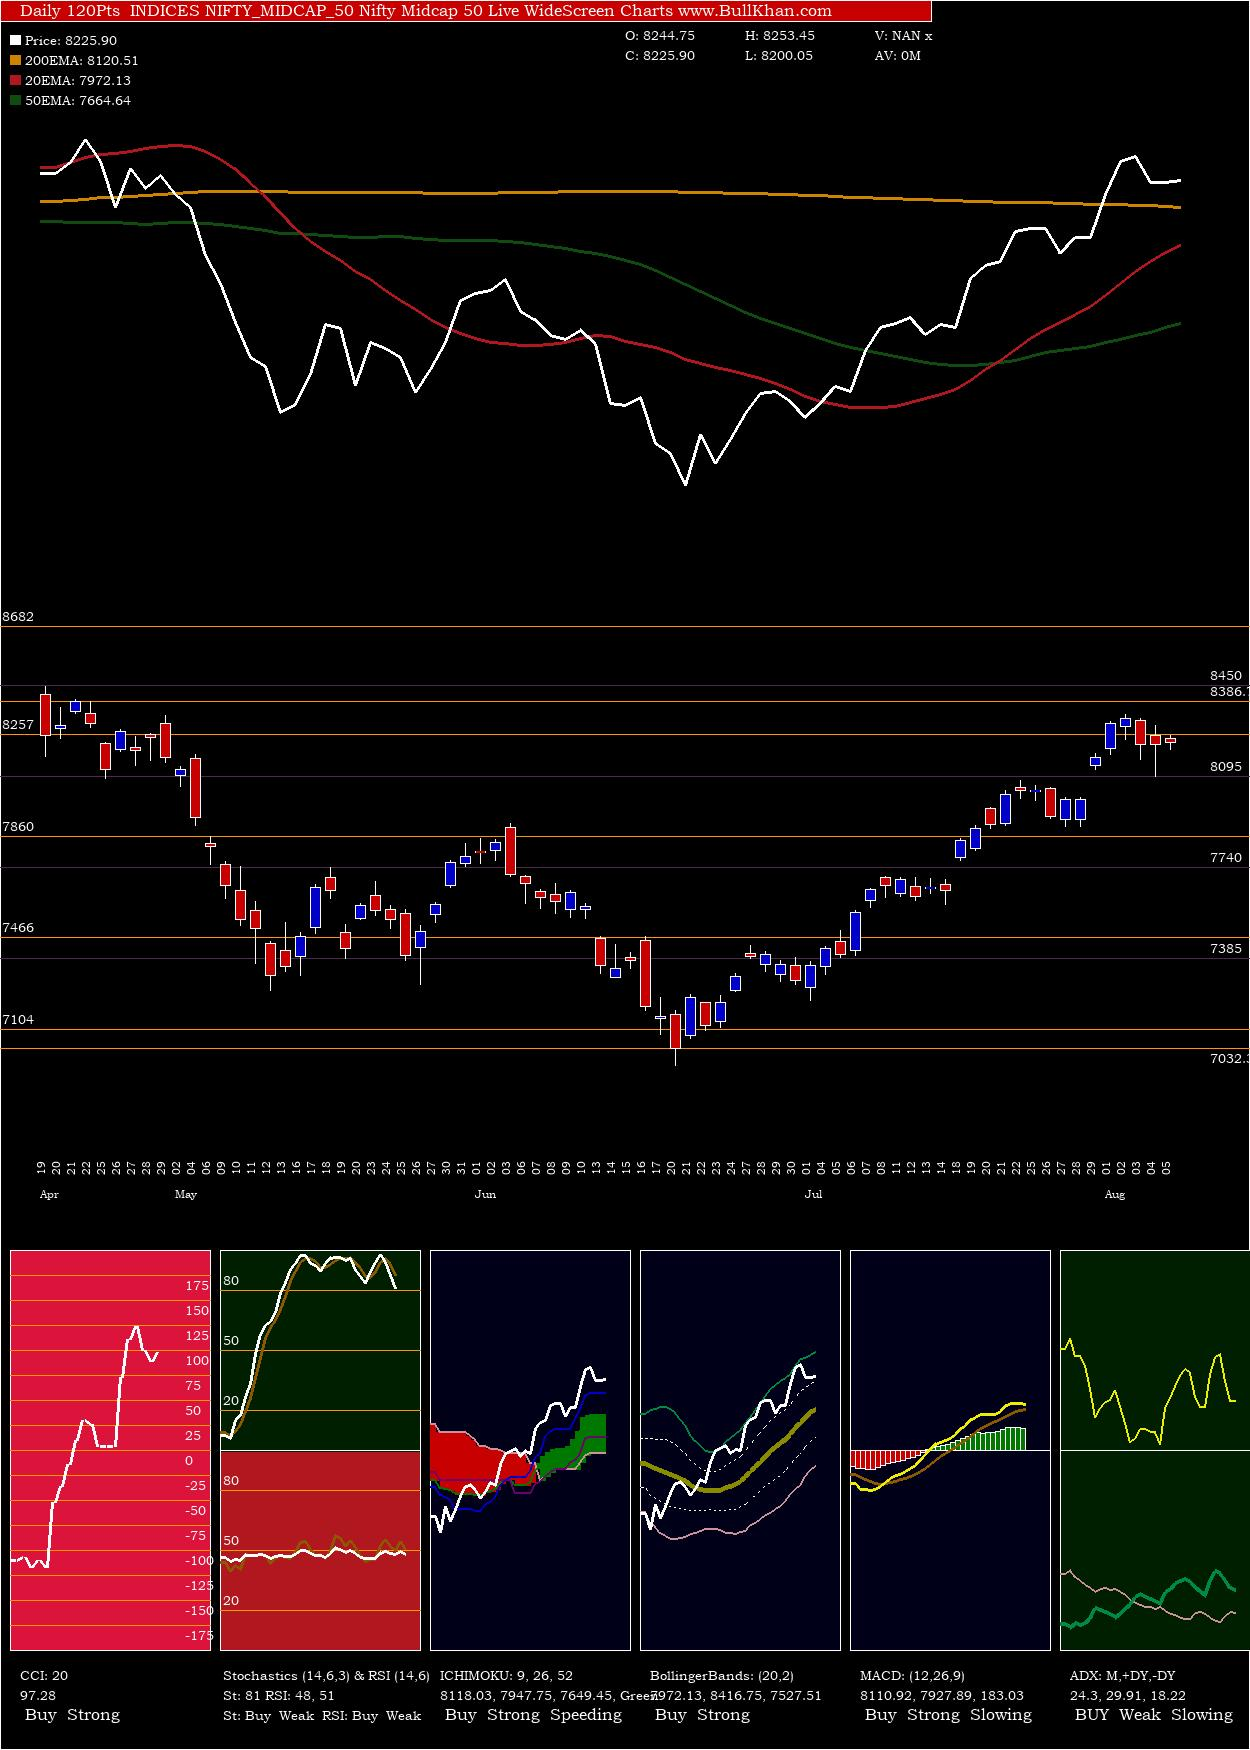 Nifty Midcap charts and indicators